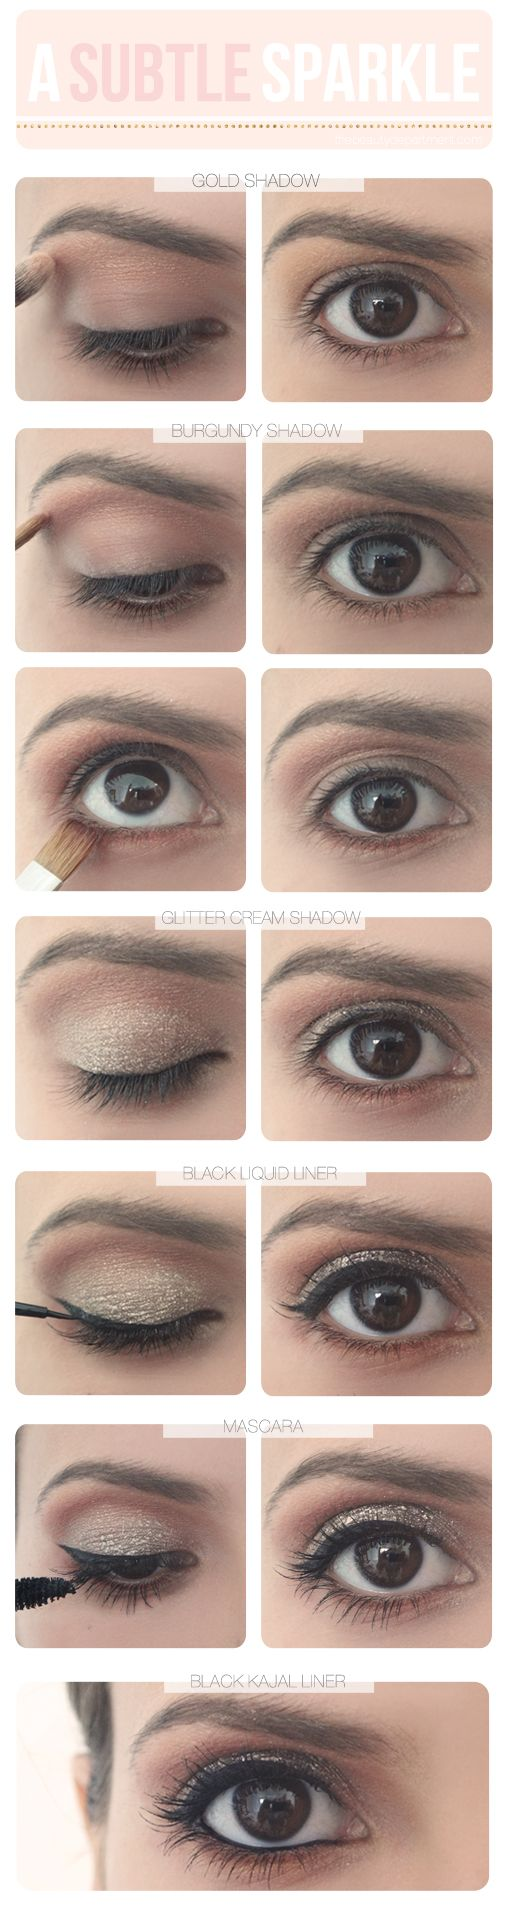 Glitter eye makeup. Recipes